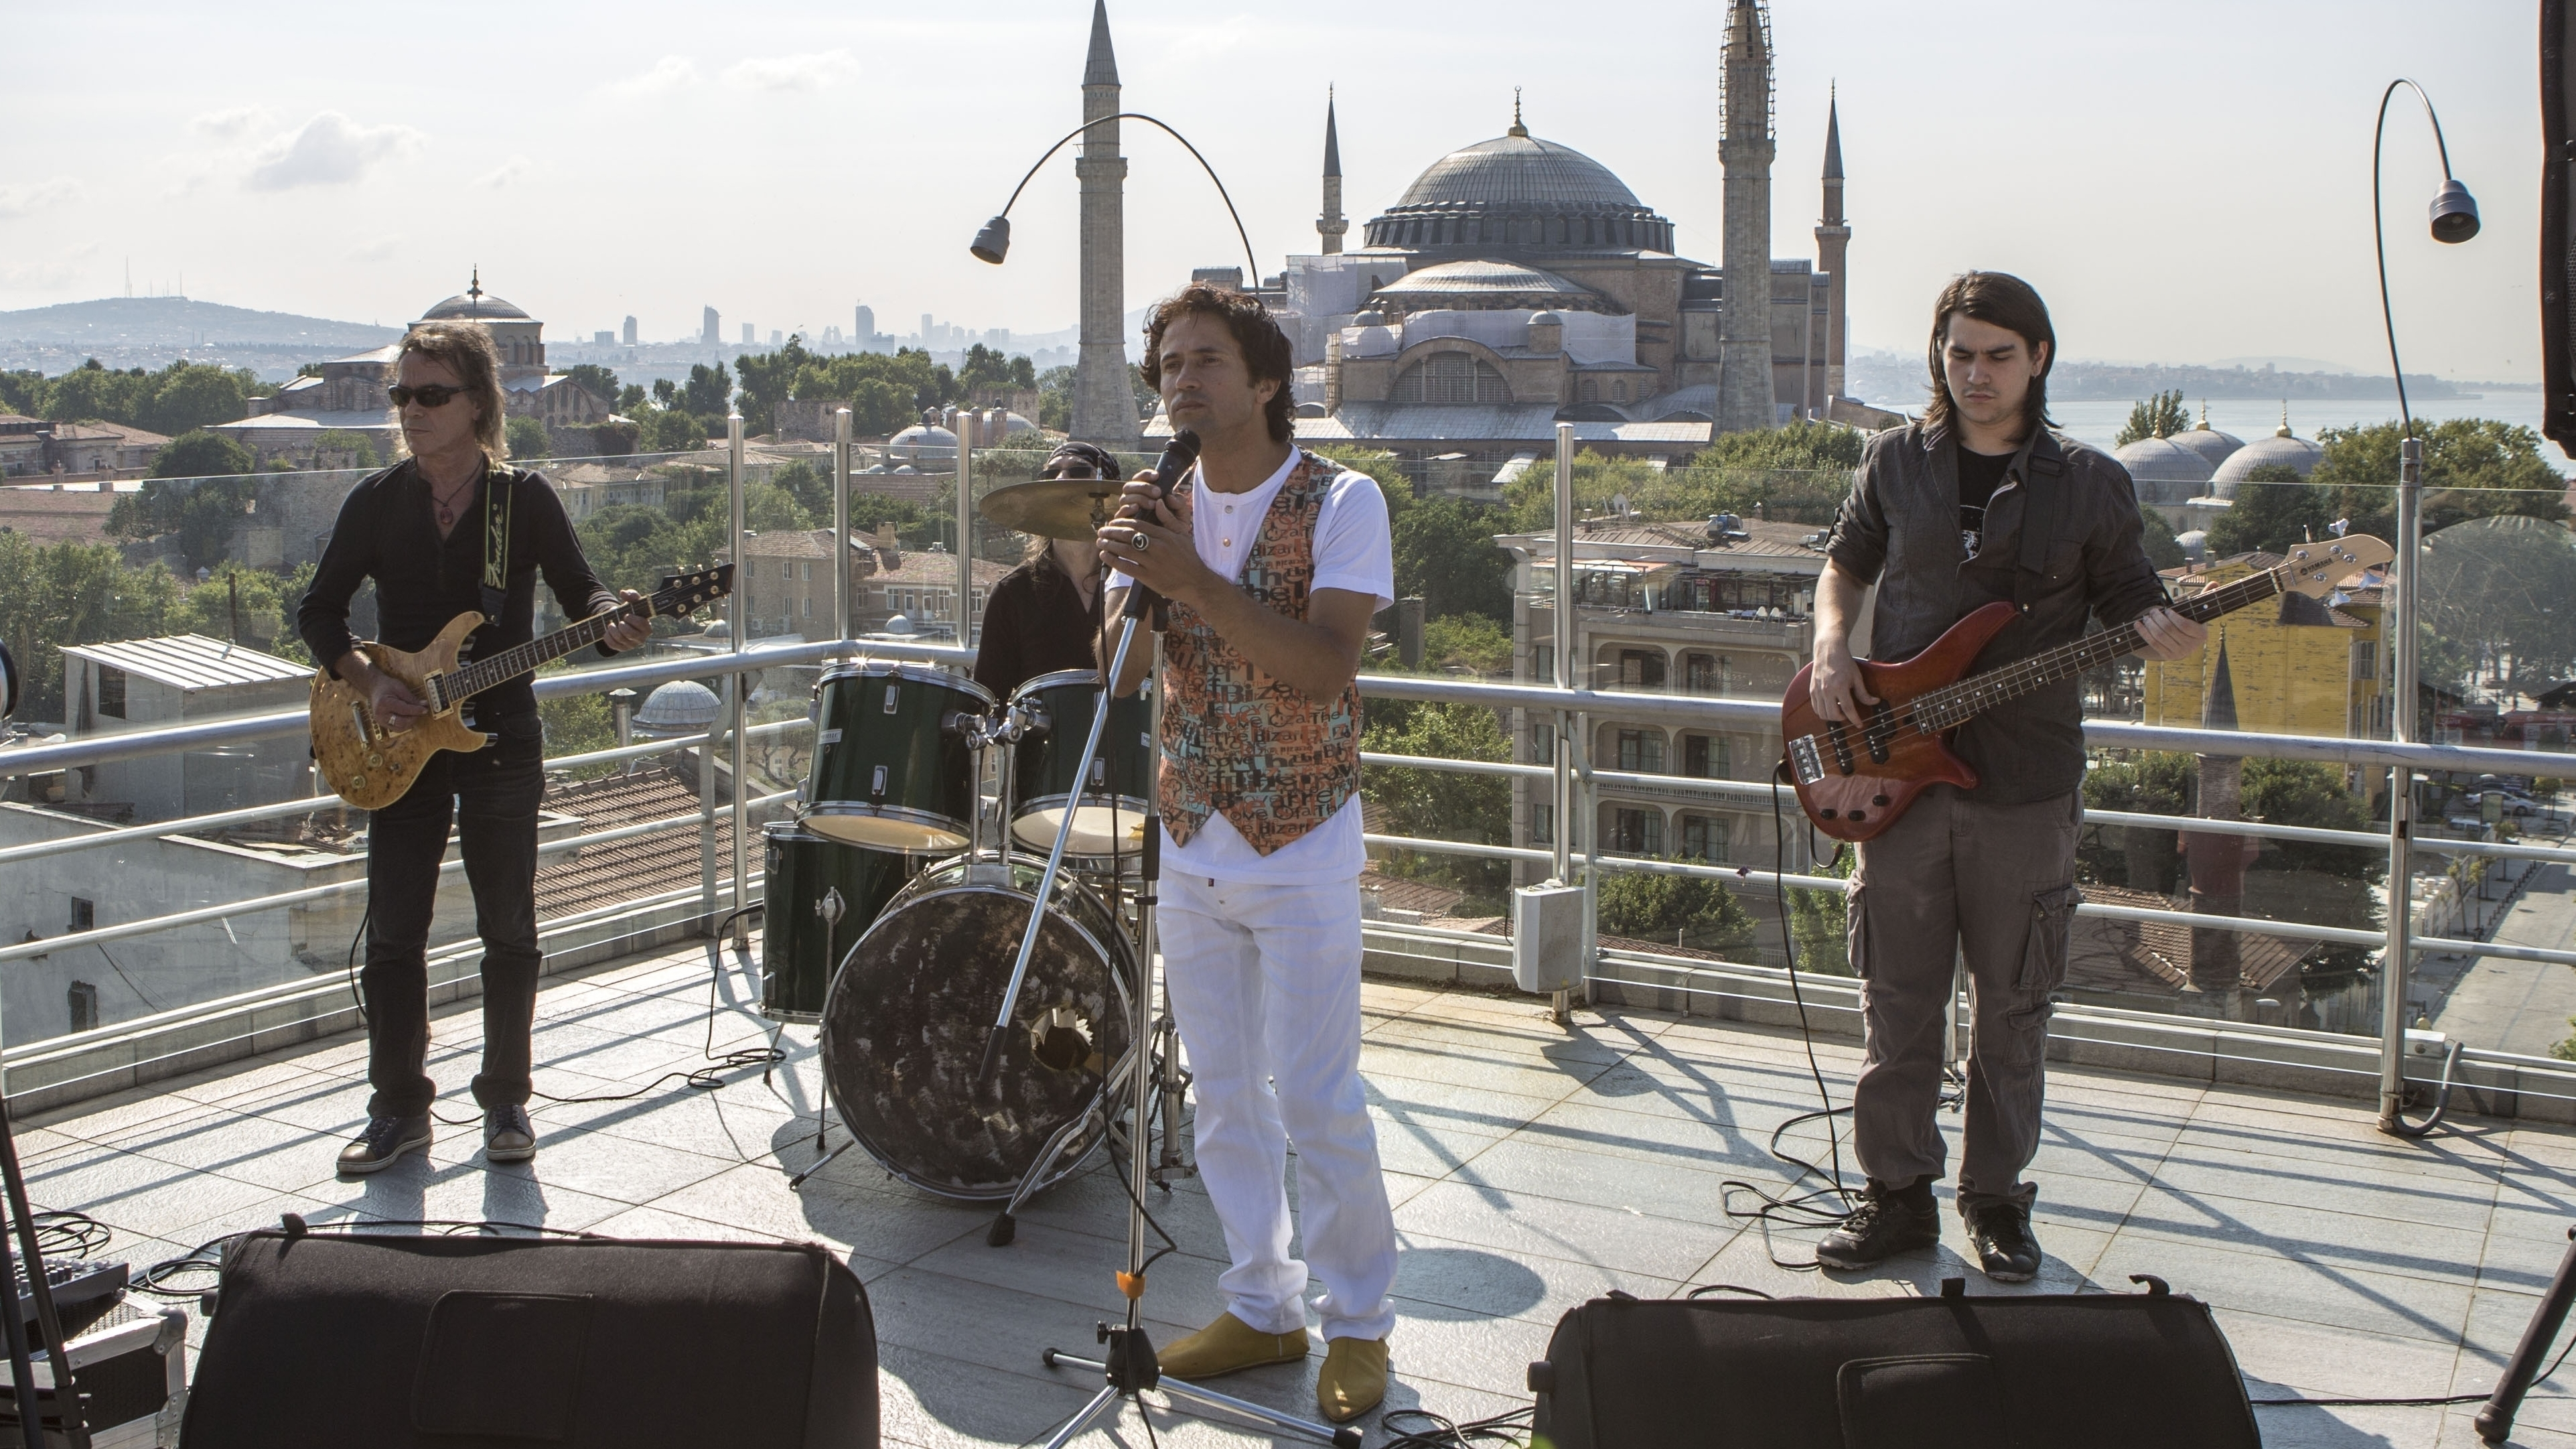 Turkey's 'Rockin' Imam' Inspires Youth, Tests Boundaries